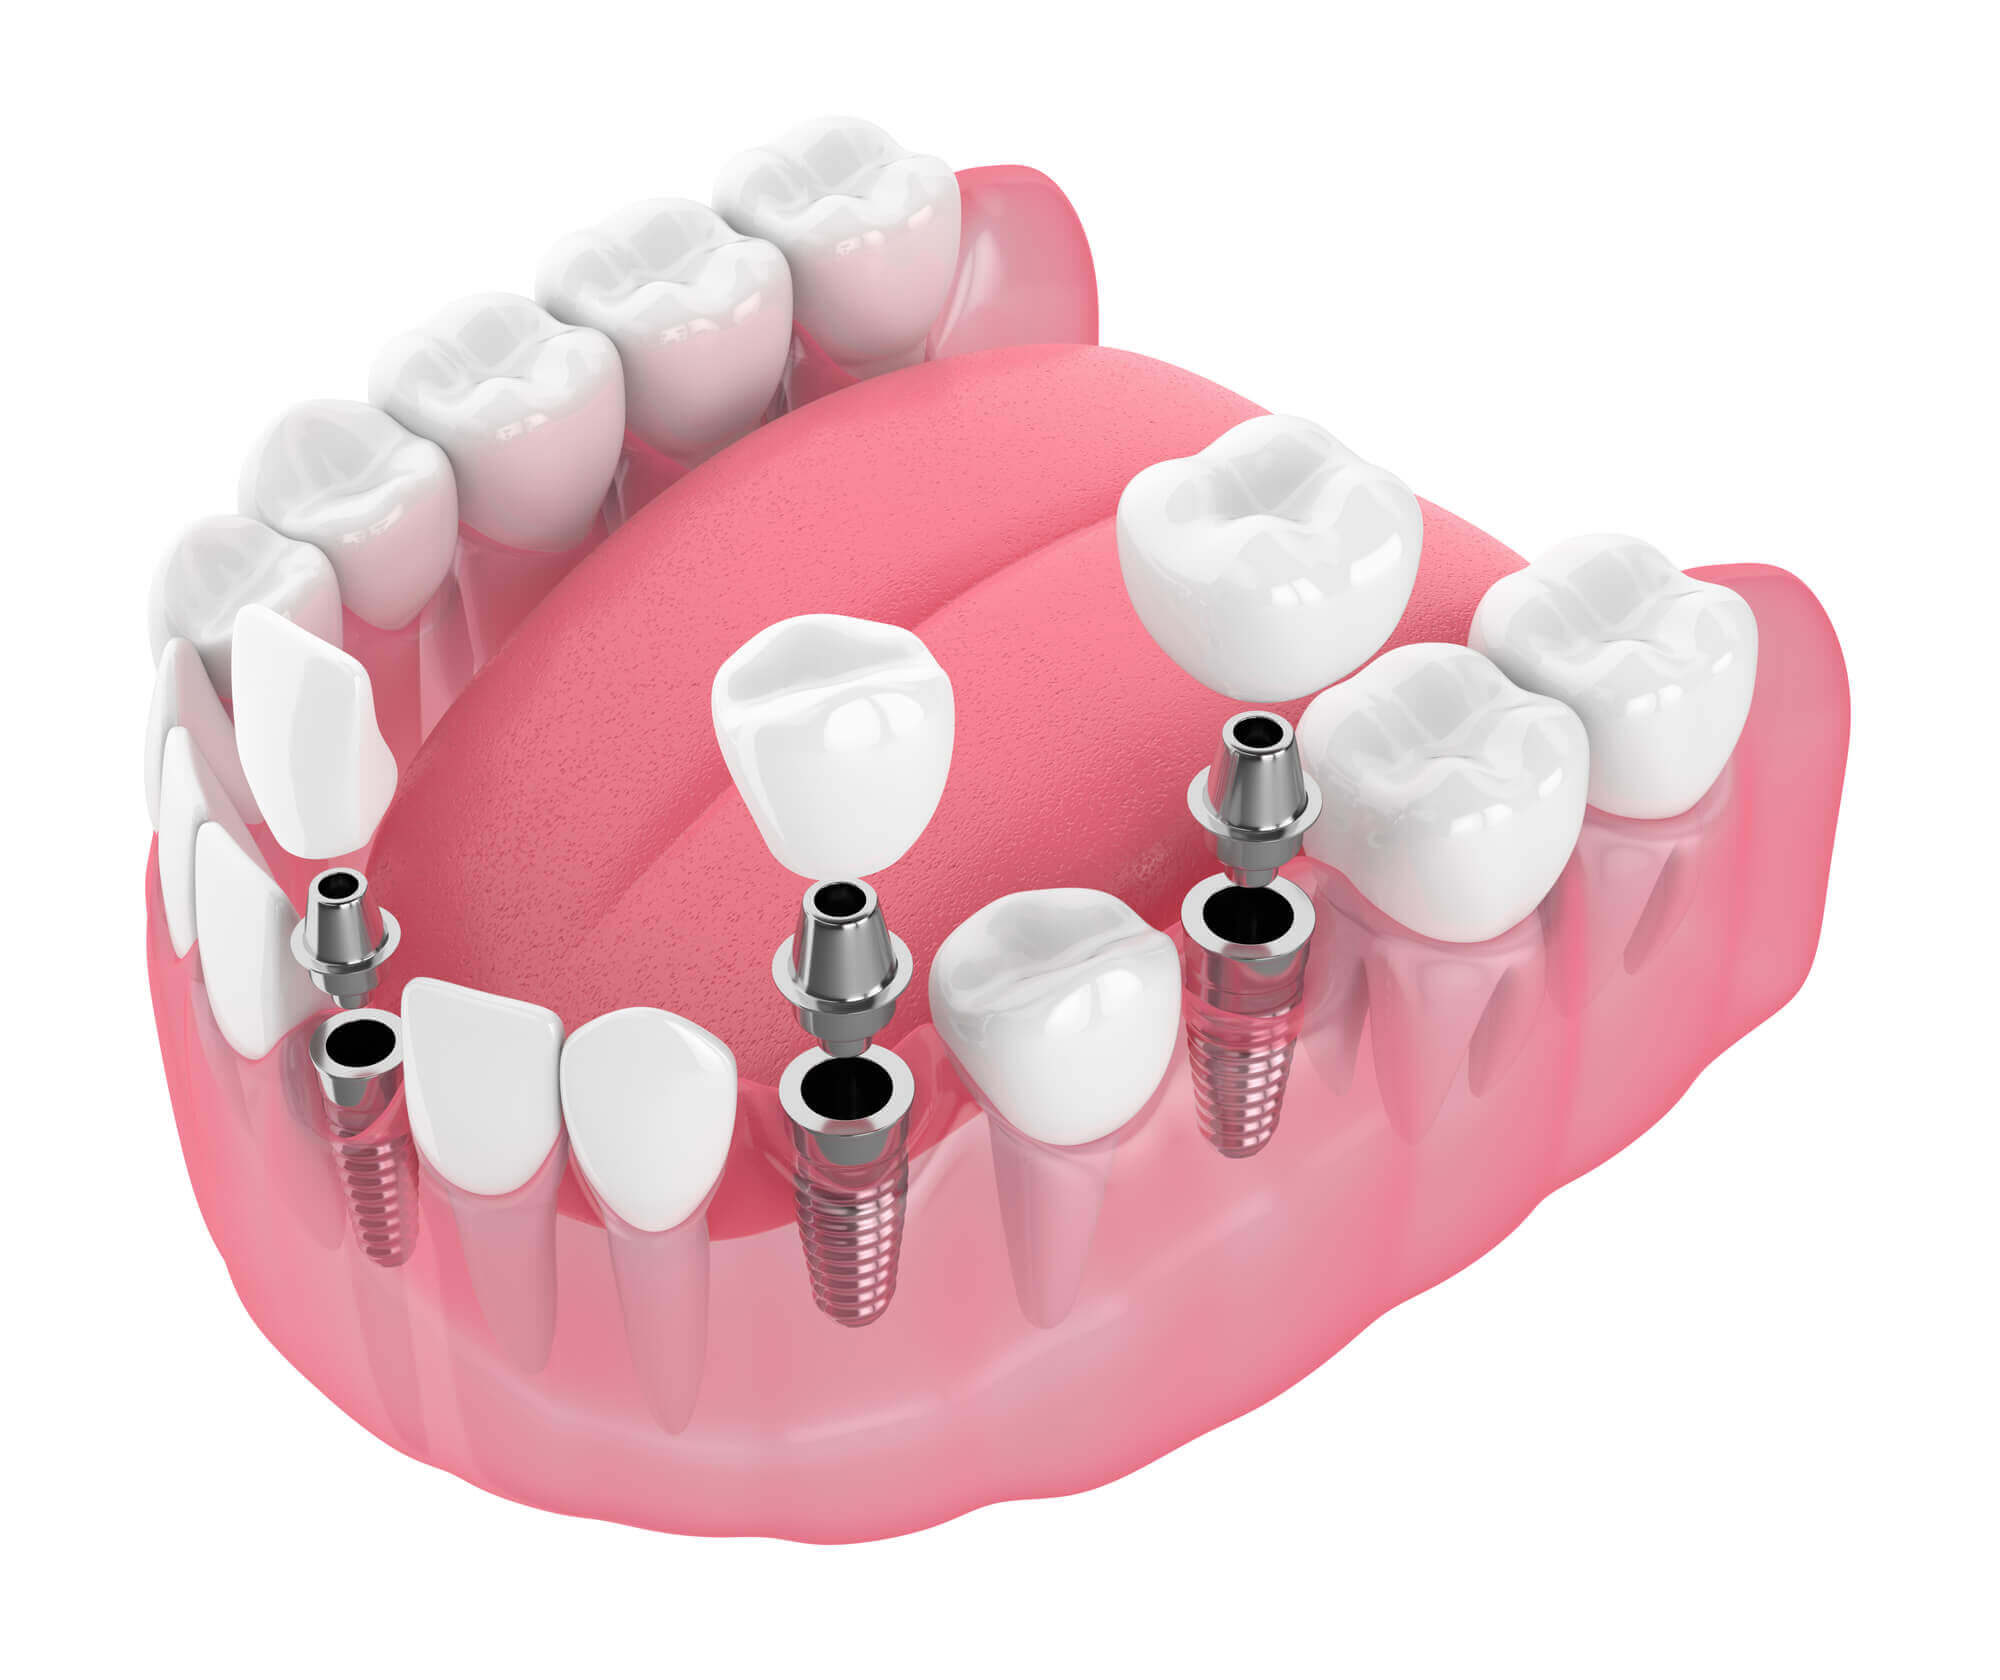 Where can I get Dental Implants Sunny Isles FL?